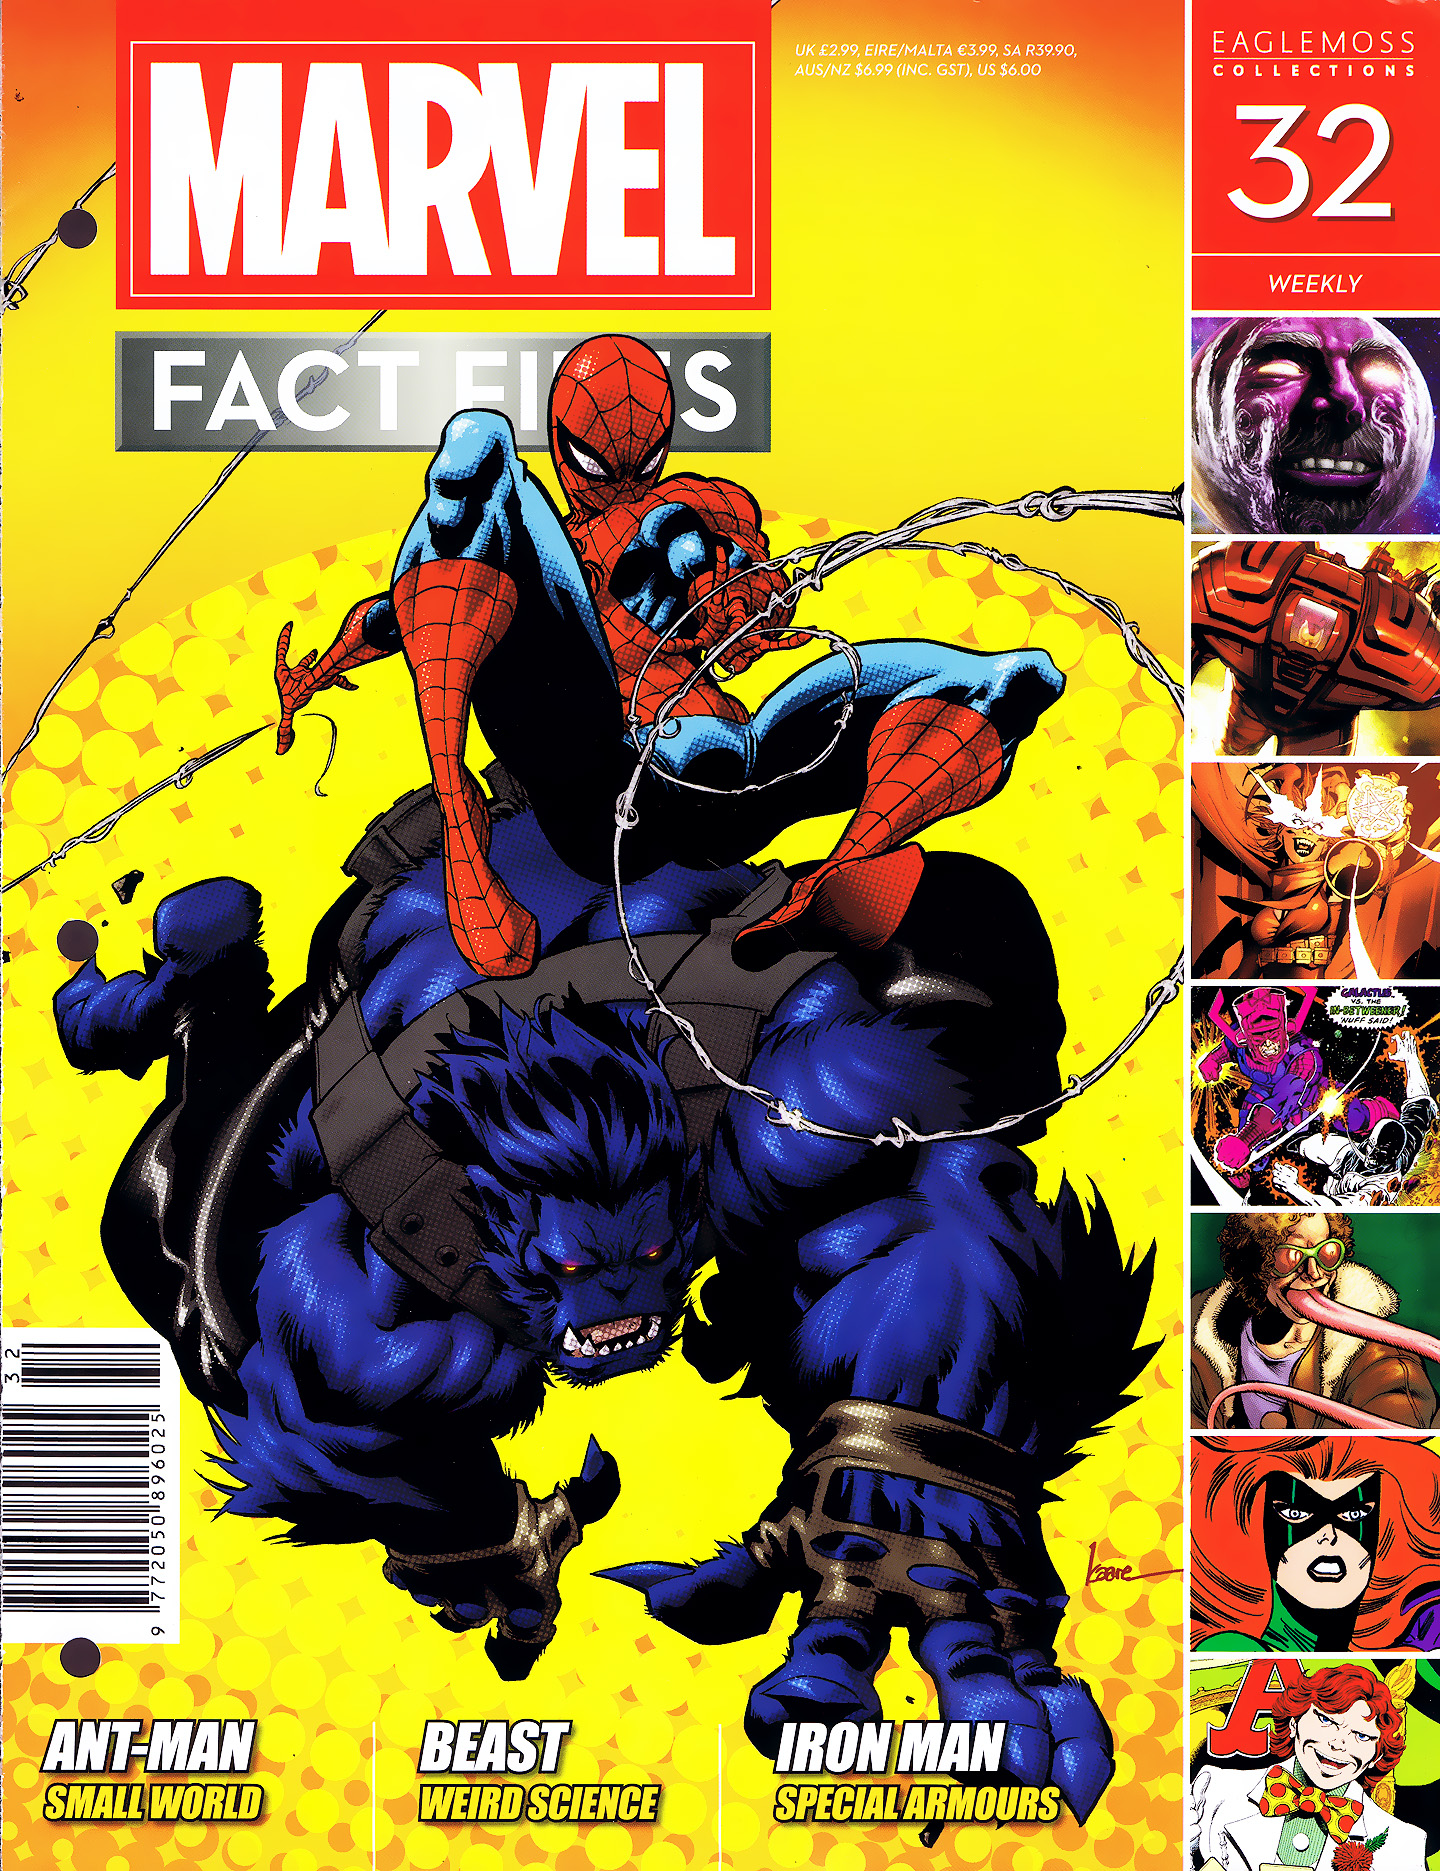 Marvel Fact Files 32 Page 1